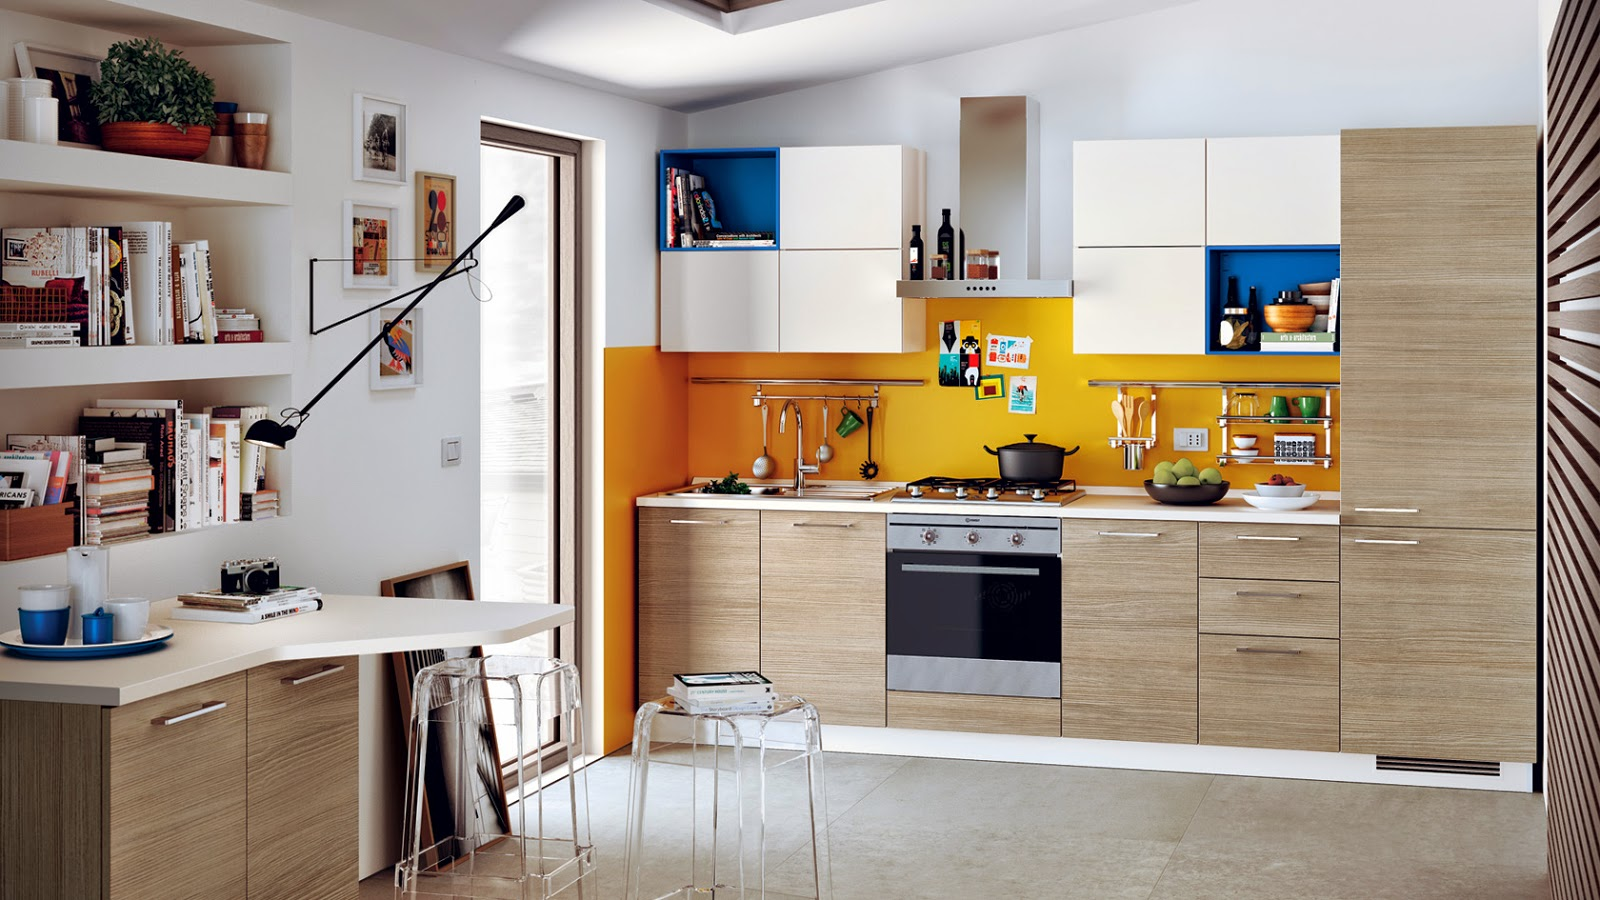 Modular Kitchens in Bangalore: Italian modular kitchens from Scavolini